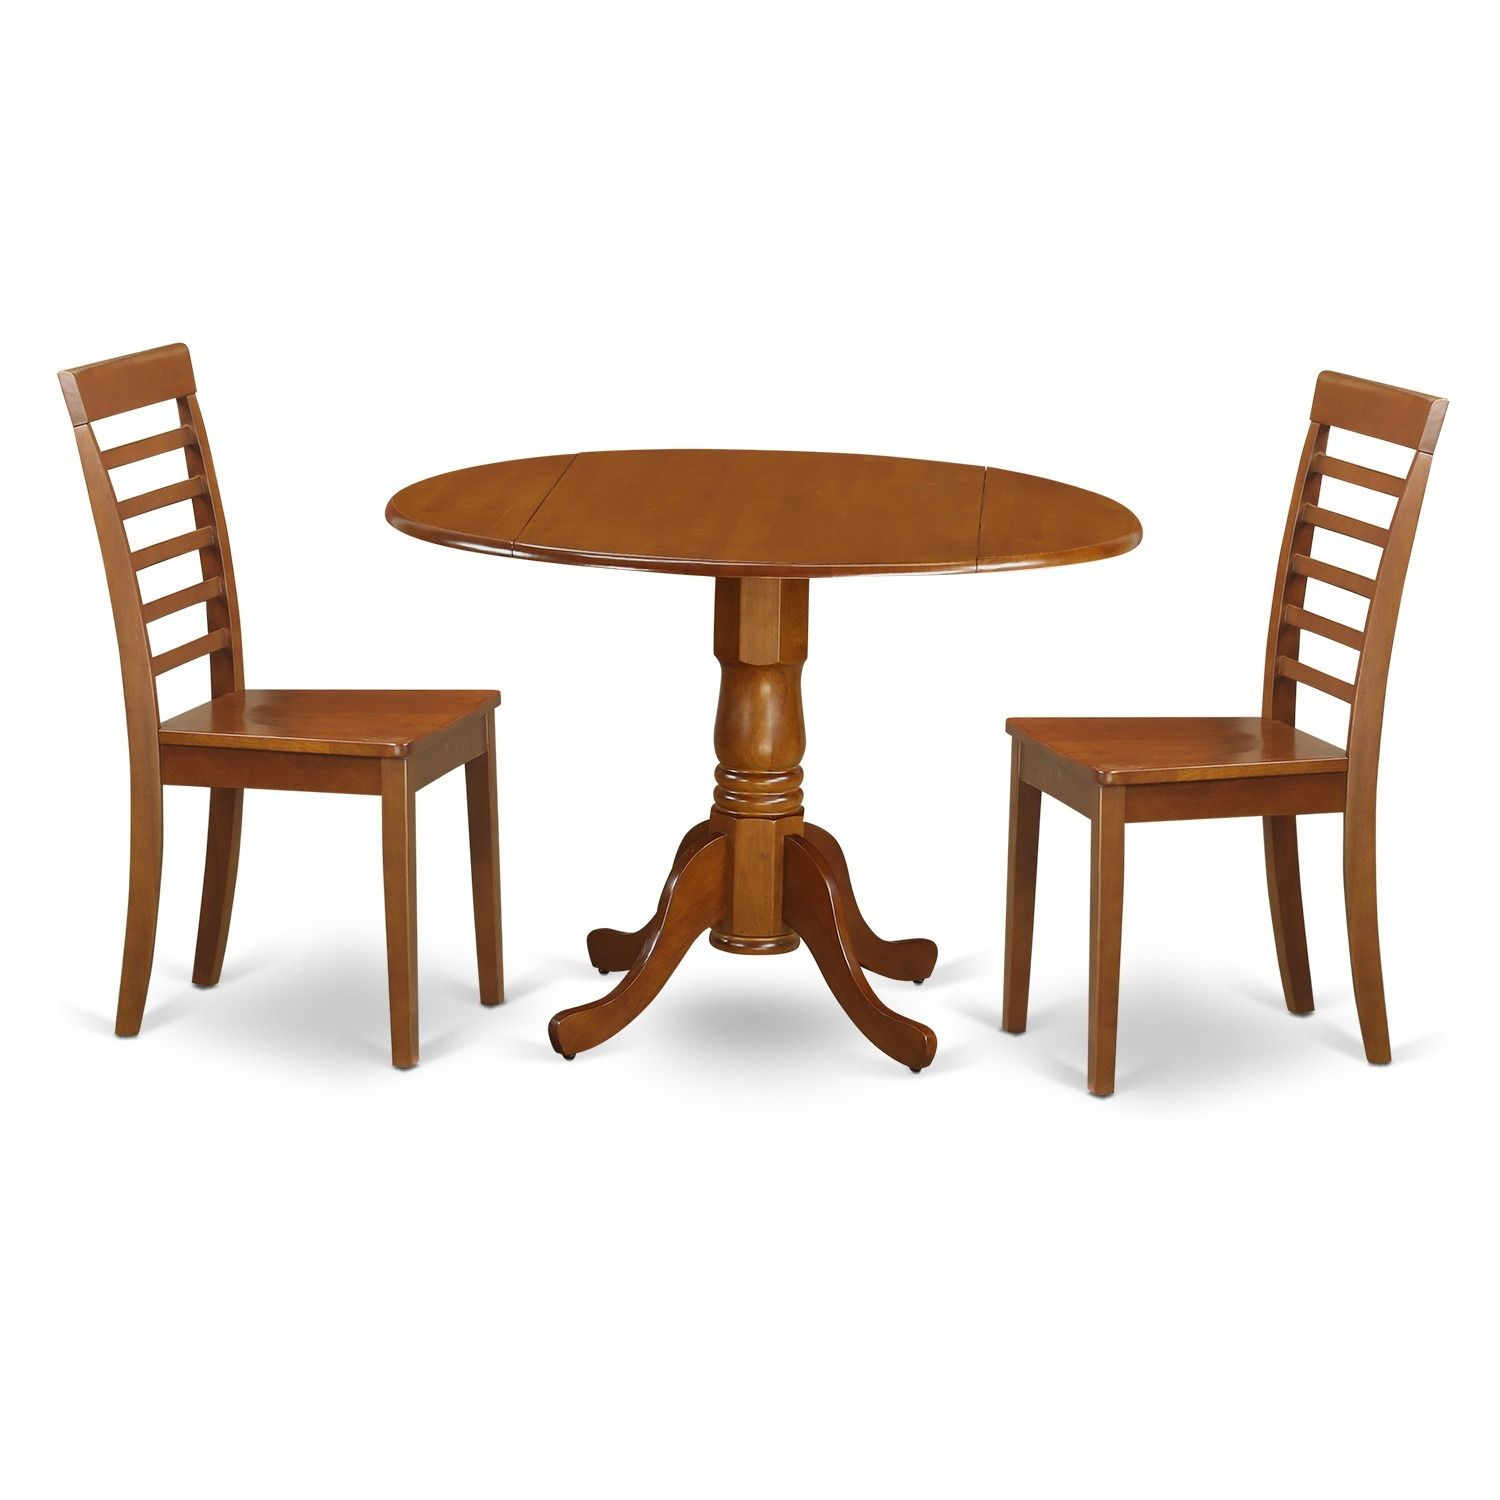 Saddle Brown Small Kitchen Table And 2 Chairs Dining Set Wood Seat Size